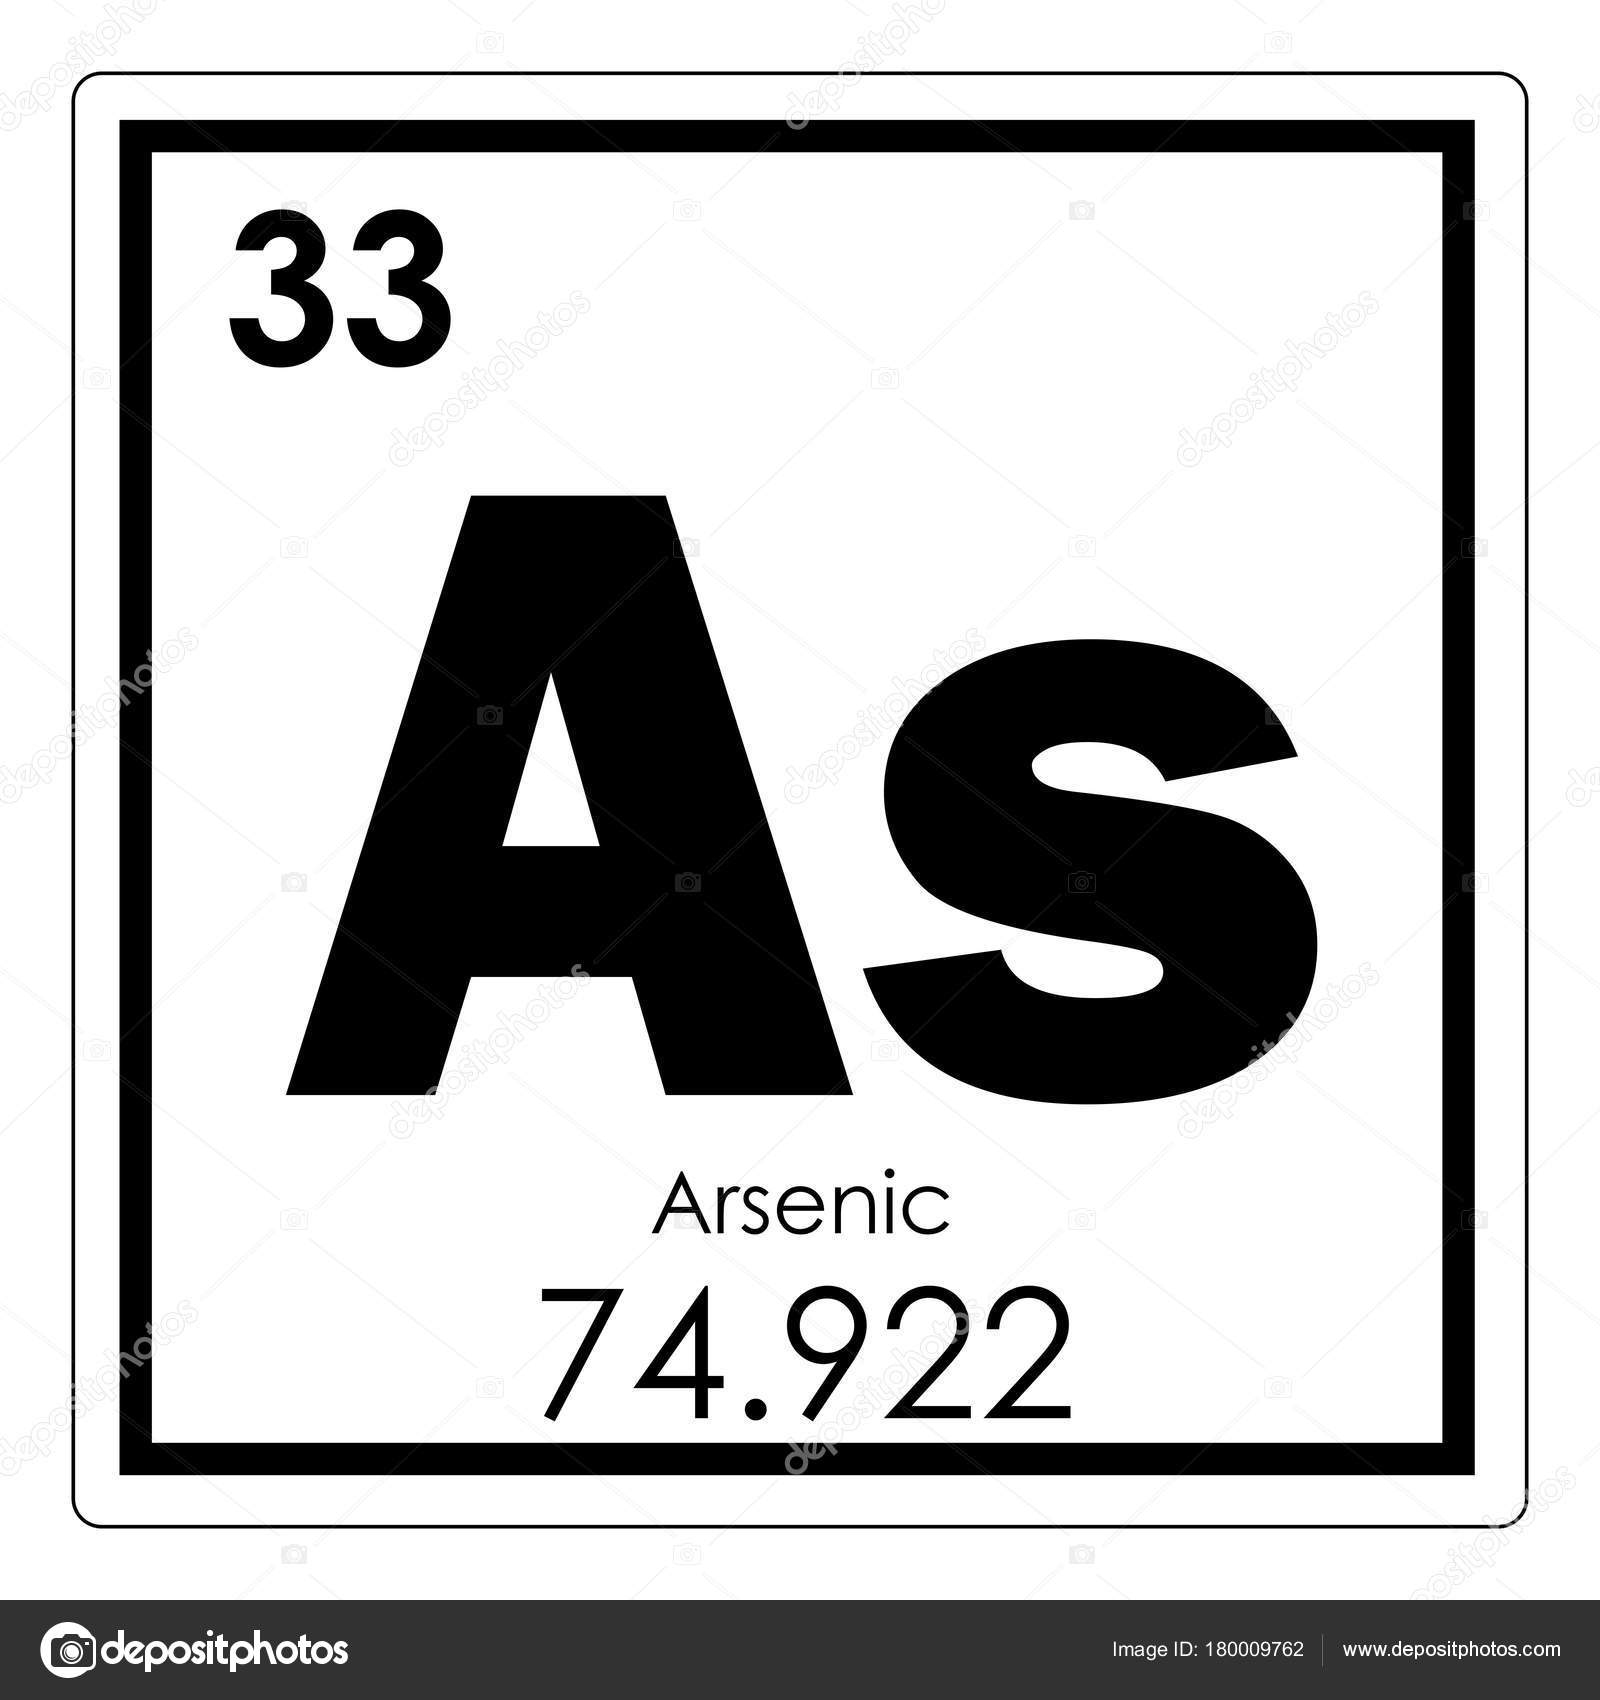 A study on the chemical element of arsenic